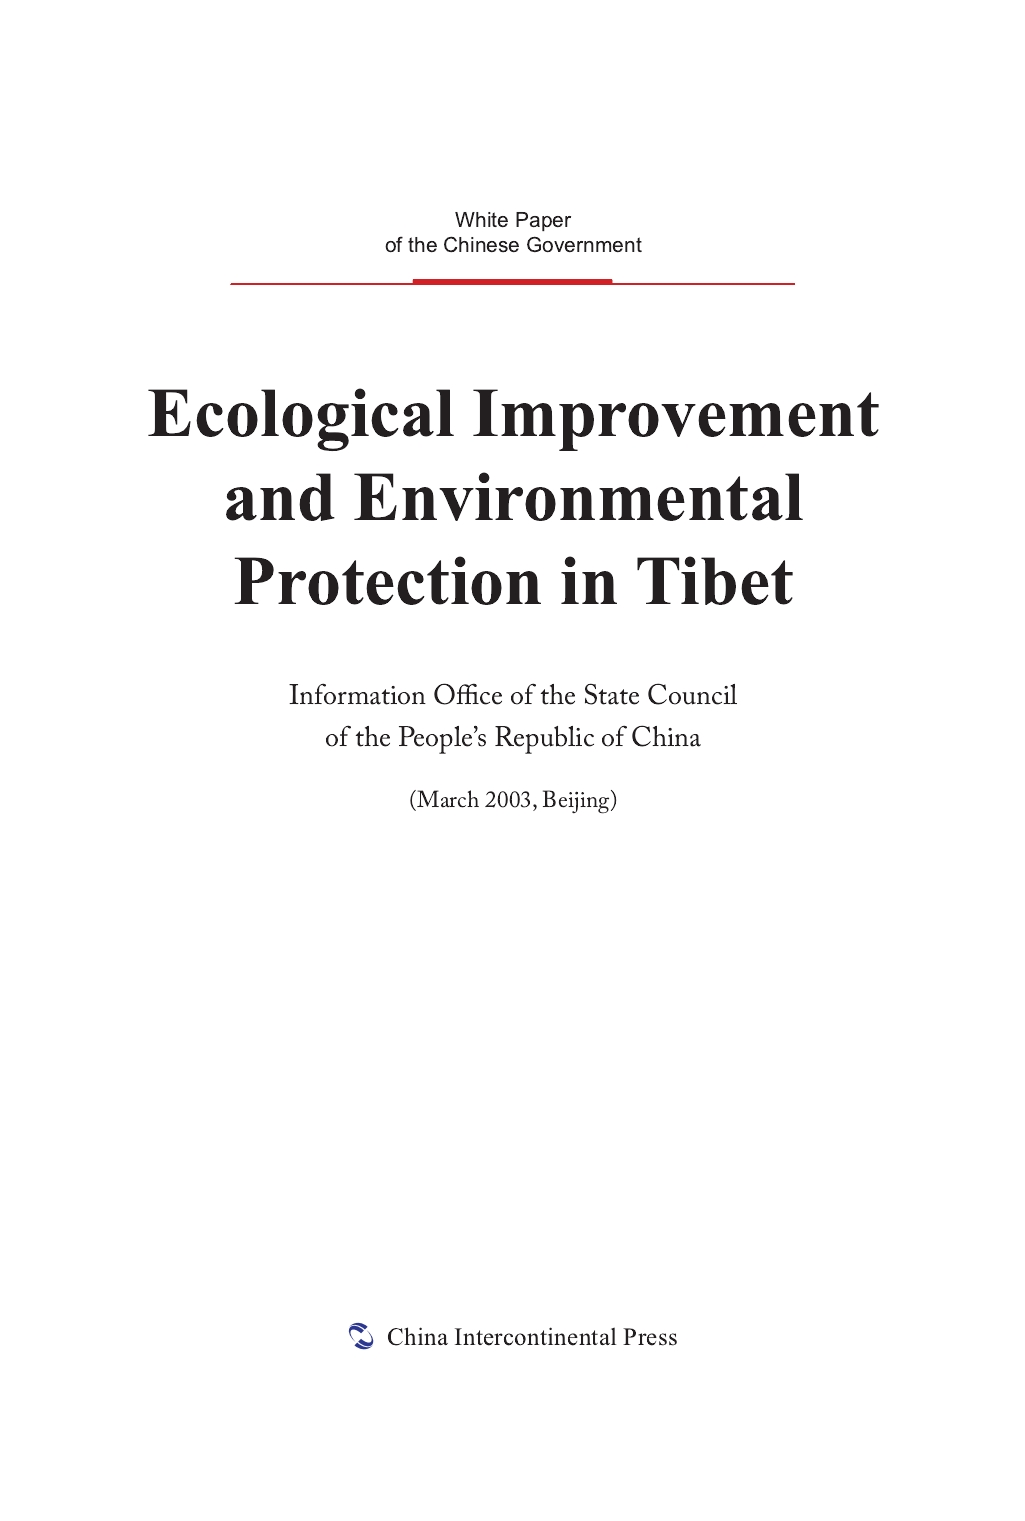 Ecological Improvement and Environmental Protection in Tibet